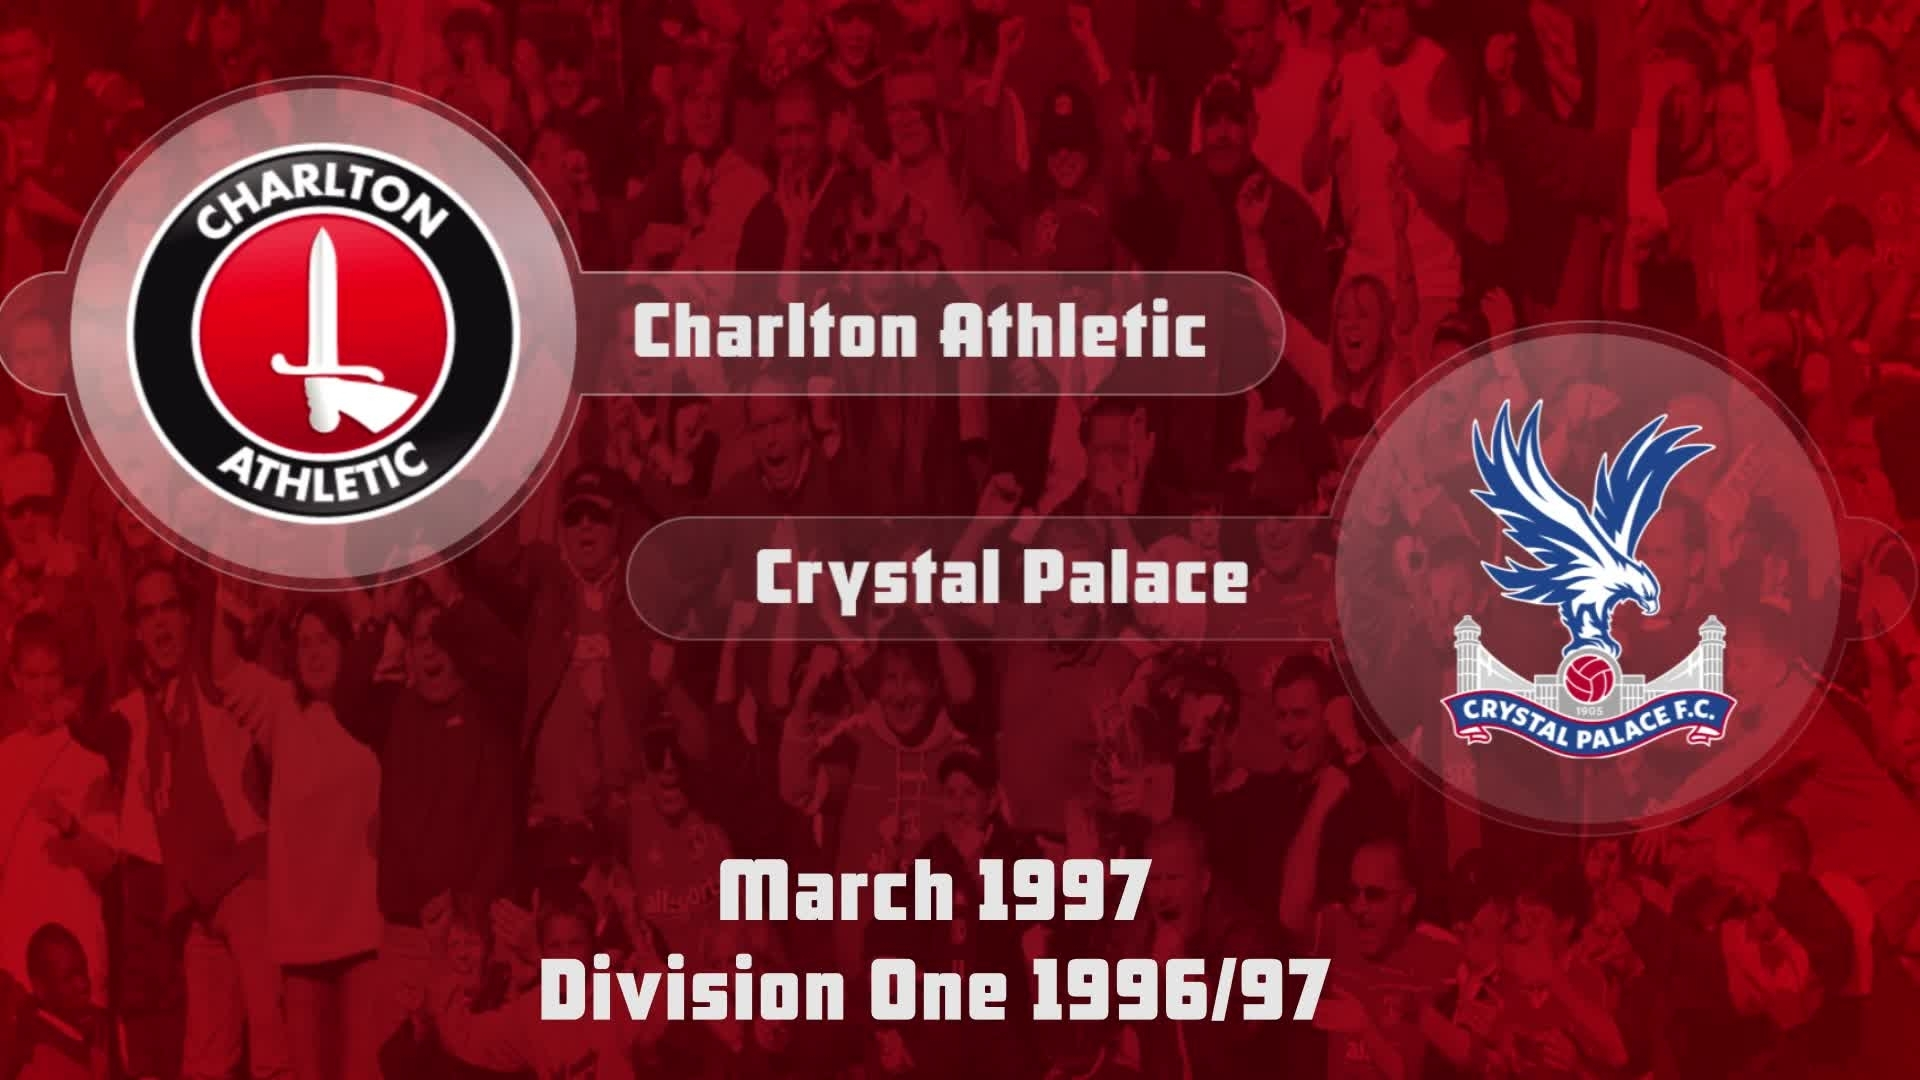 41 HIGHLIGHTS | Charlton 2 Crystal Palace 1 (March 1997)